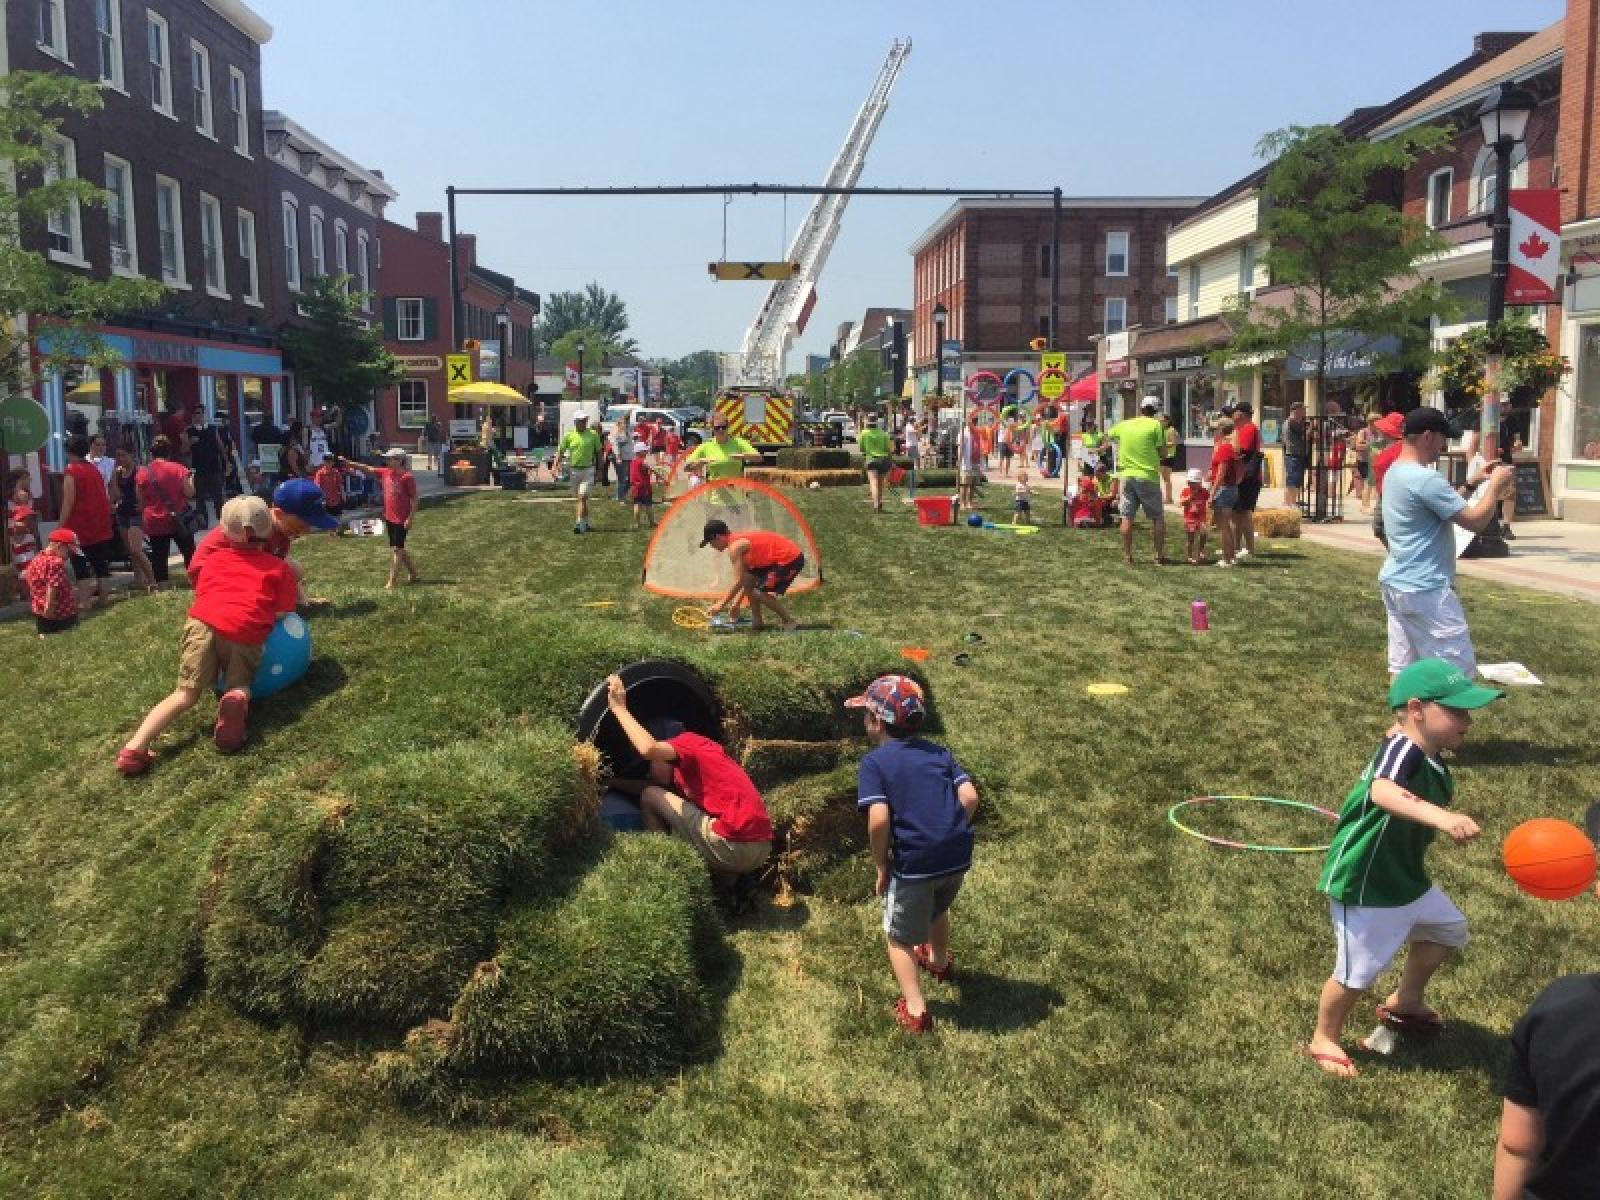 Pop up city park to teach kids the lost art of unstructured play